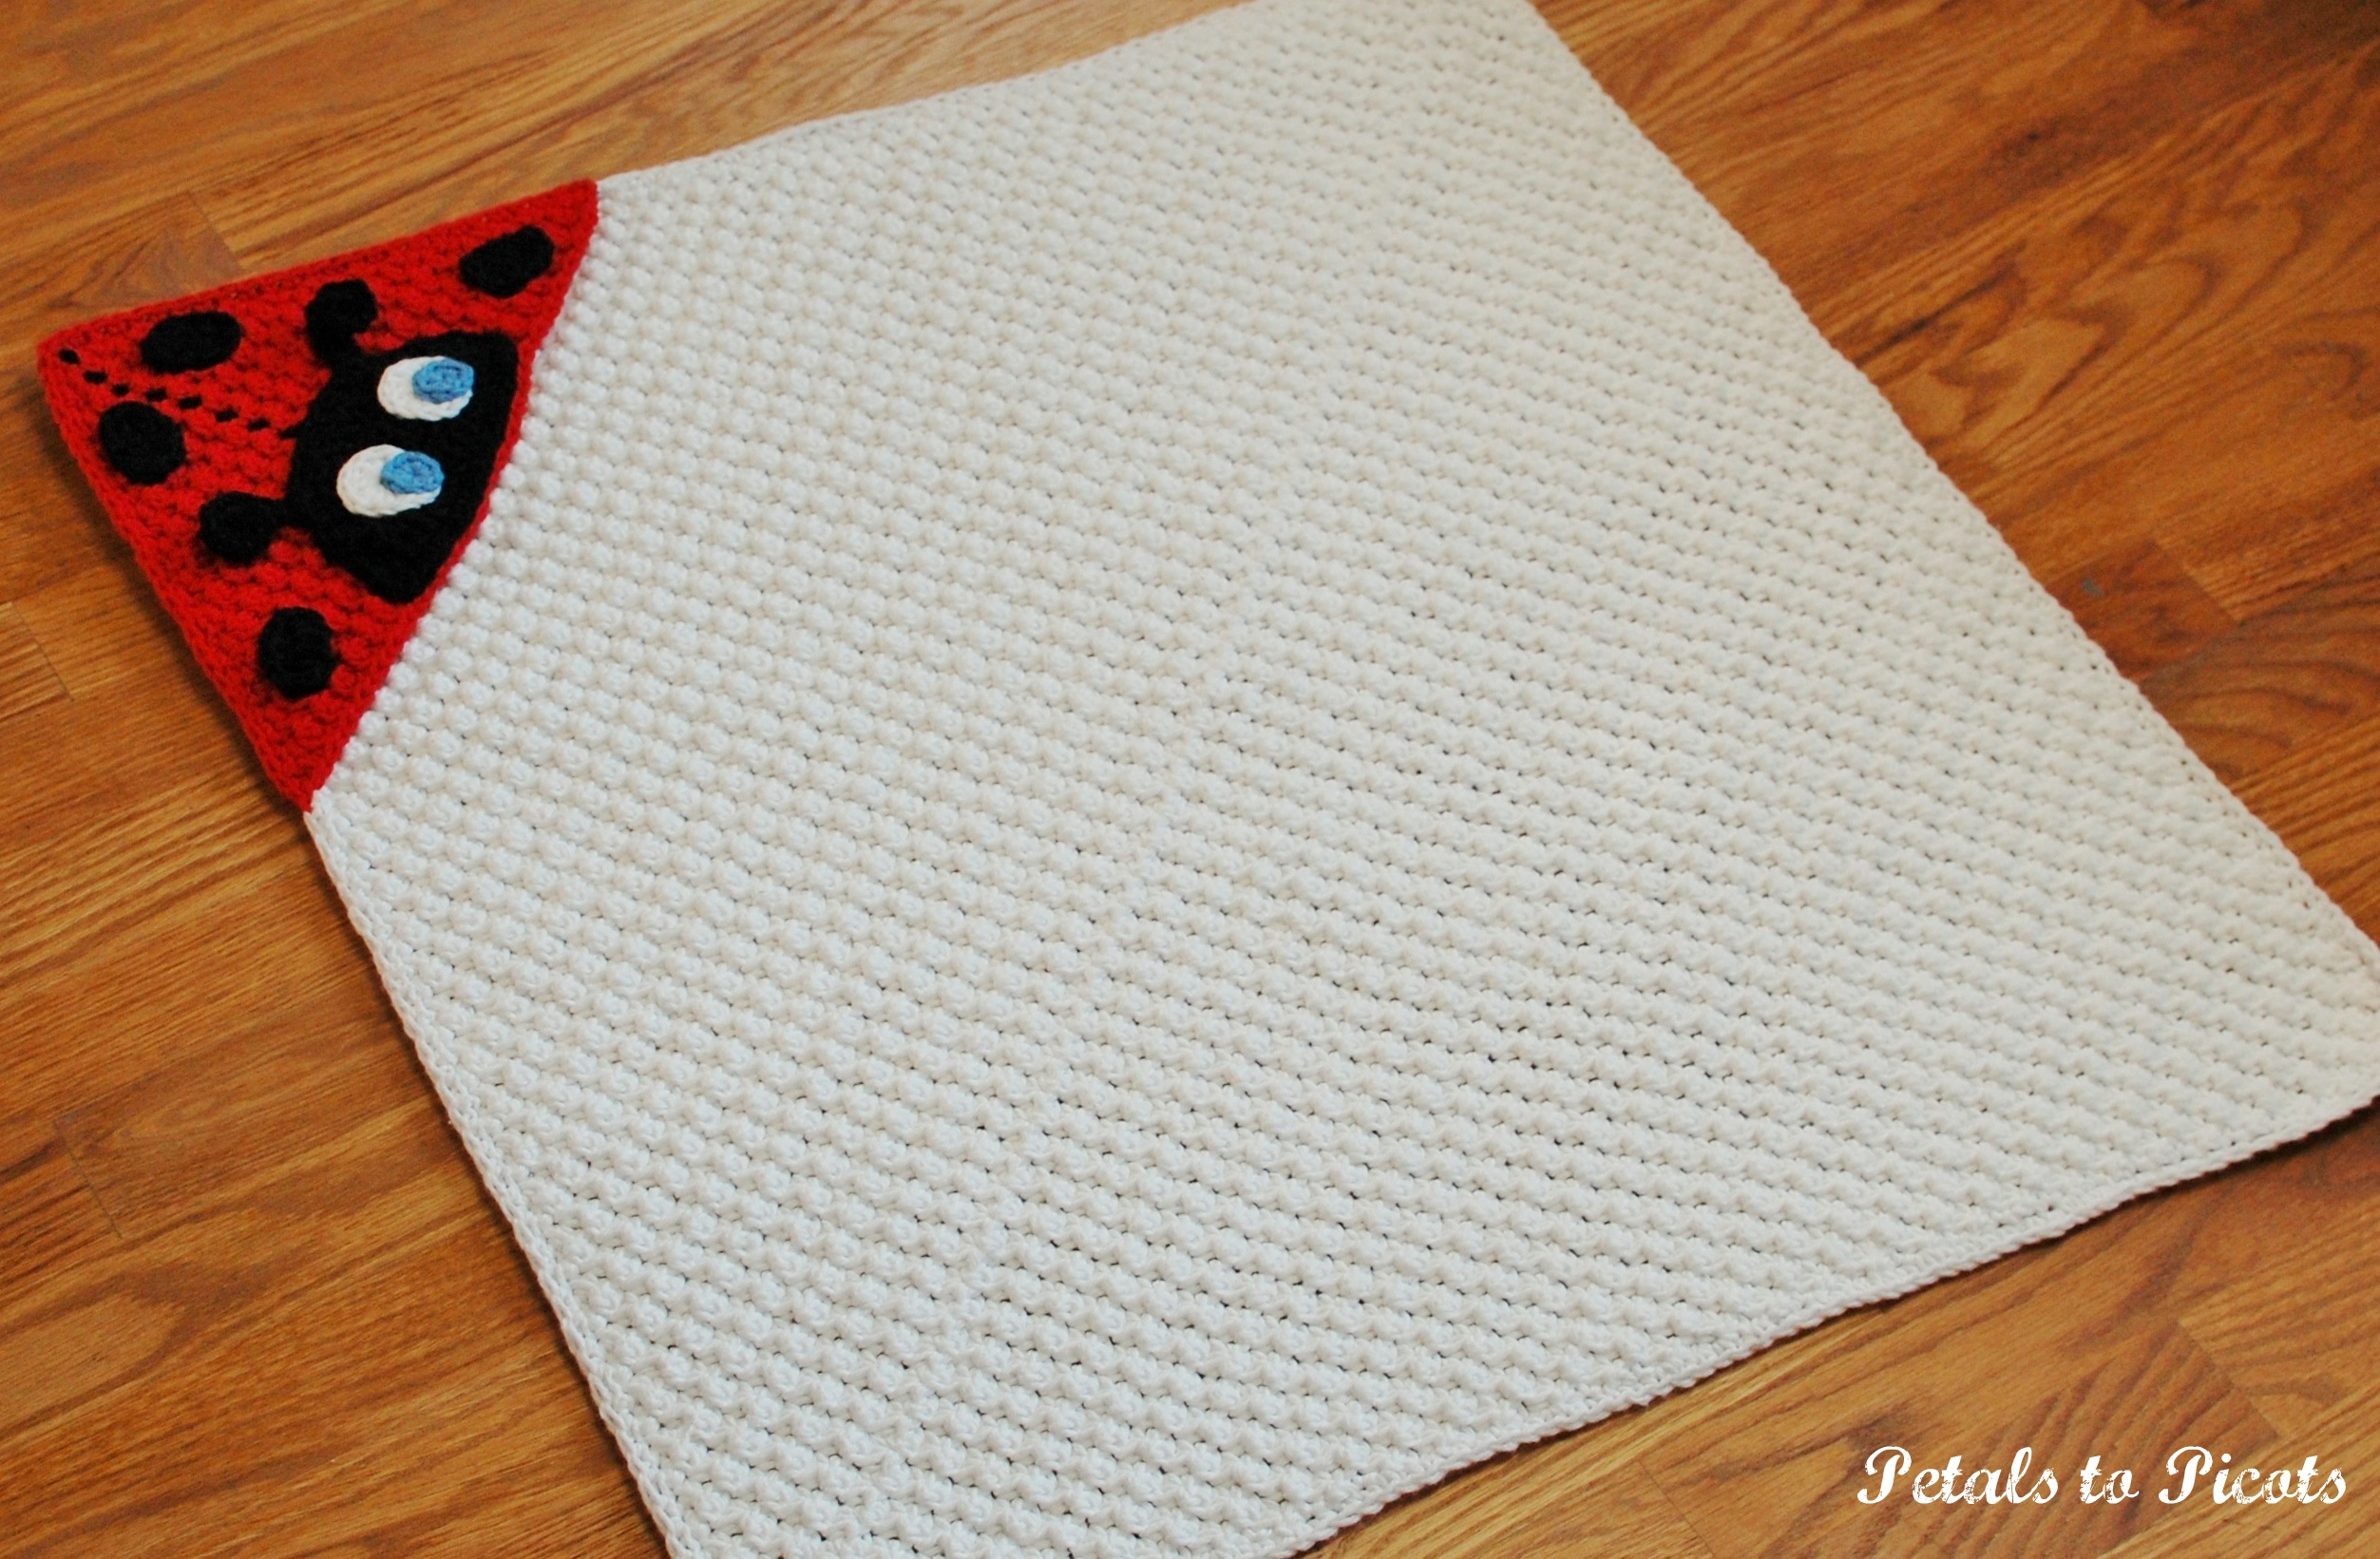 Free Crochet Ladybug Blanket Pattern : Crochet Pattern - Ladybug Hooded Baby Towel (also makes a ...